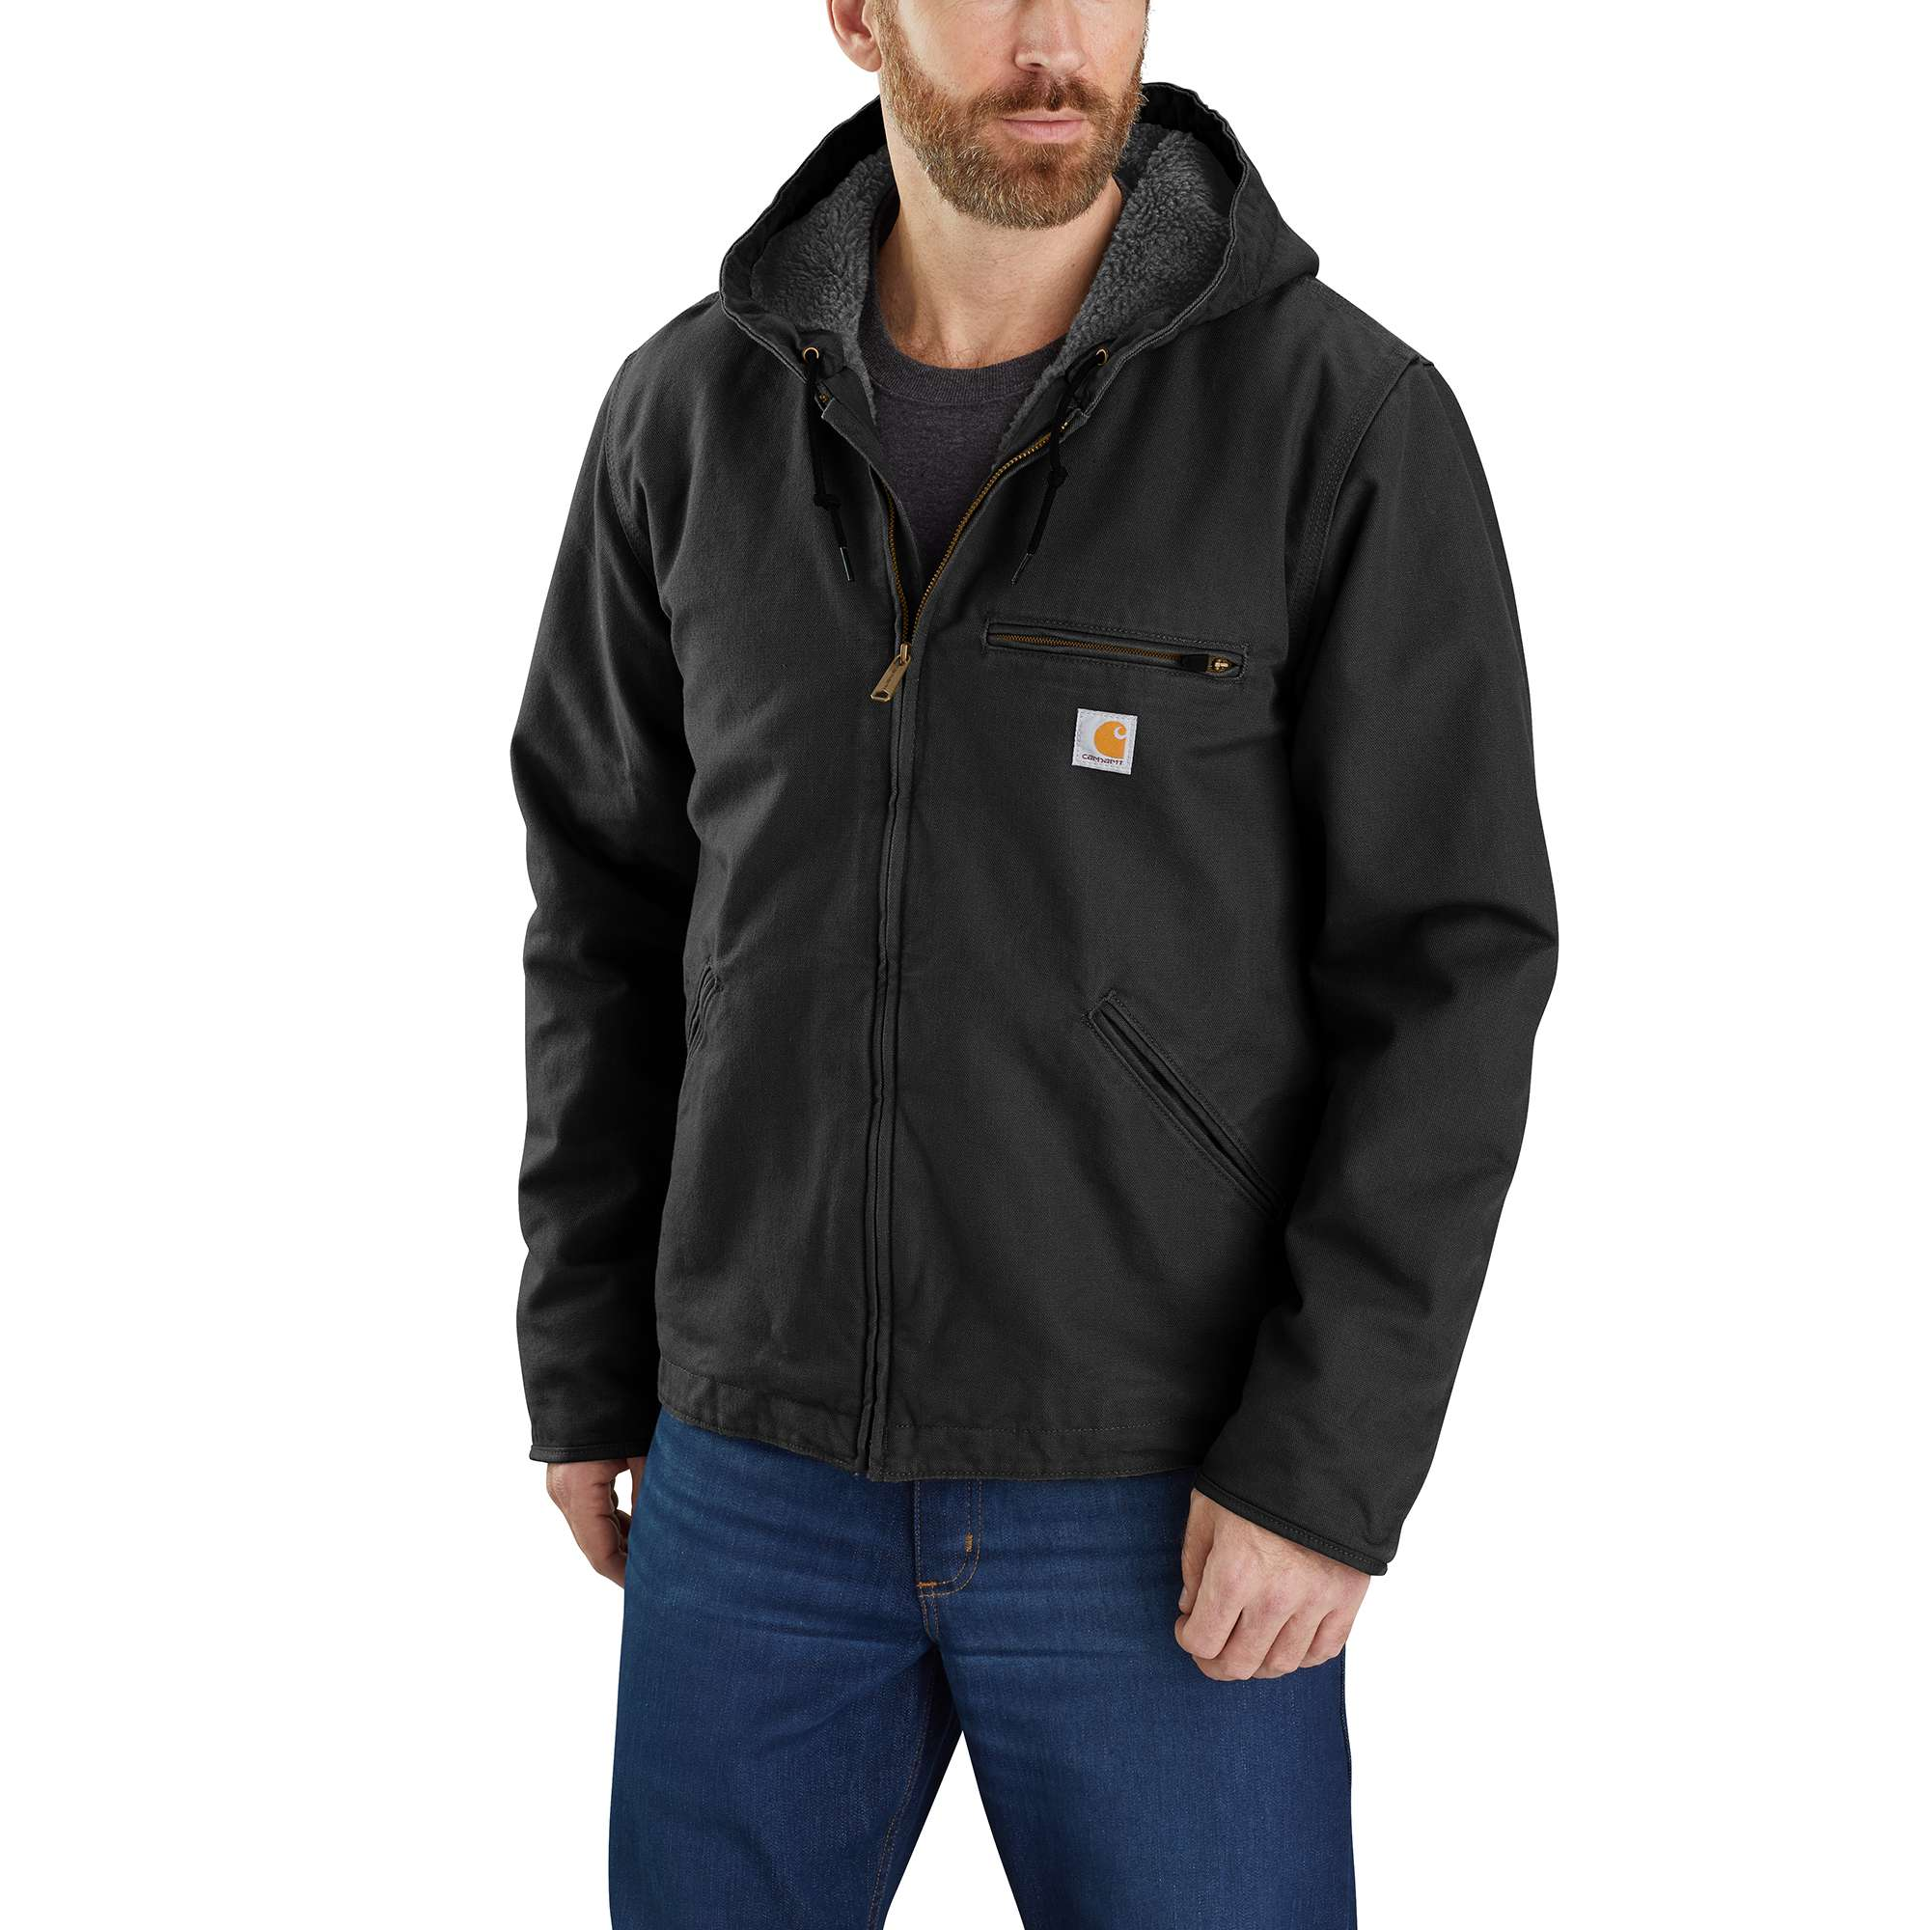 Carhartt Washed Duck Sherpa Lined Jacket